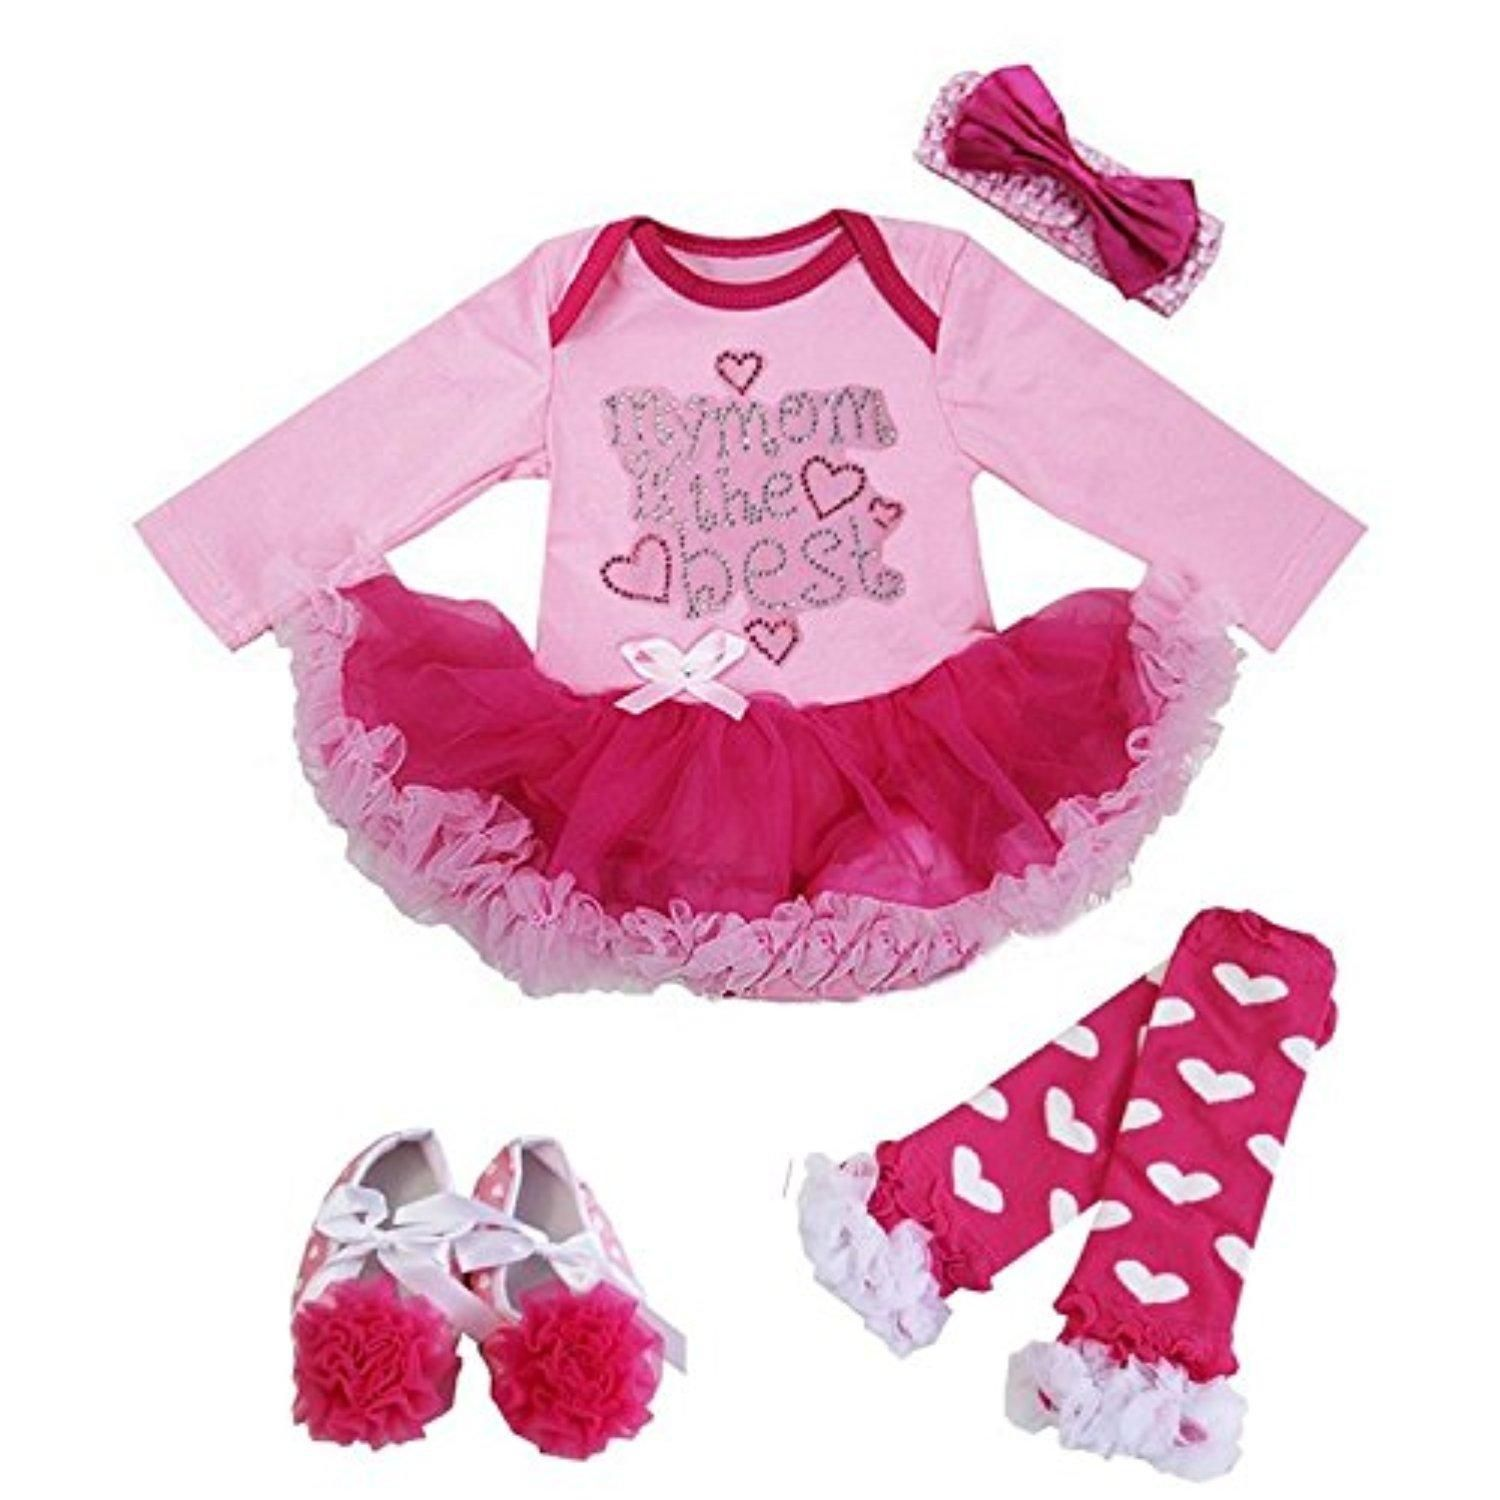 Kirei Sui Baby Rhinestone my mom is the best Long Sleeves Bodysuit Tutu Shoes Warmer X-Large Pink - Brought to you by Avarsha.com